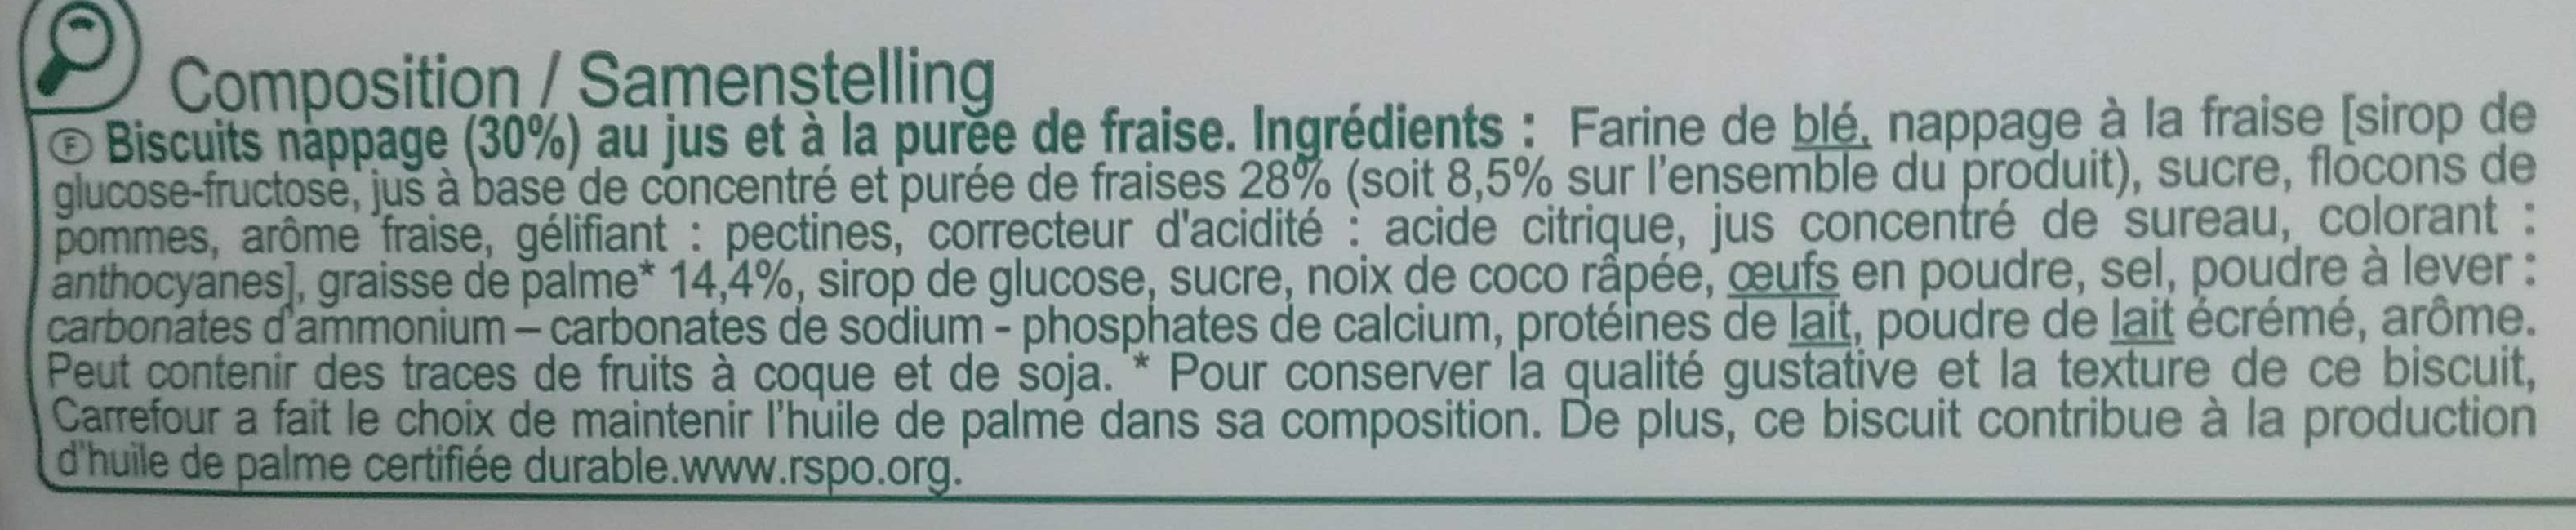 Tartelettes - Ingredients